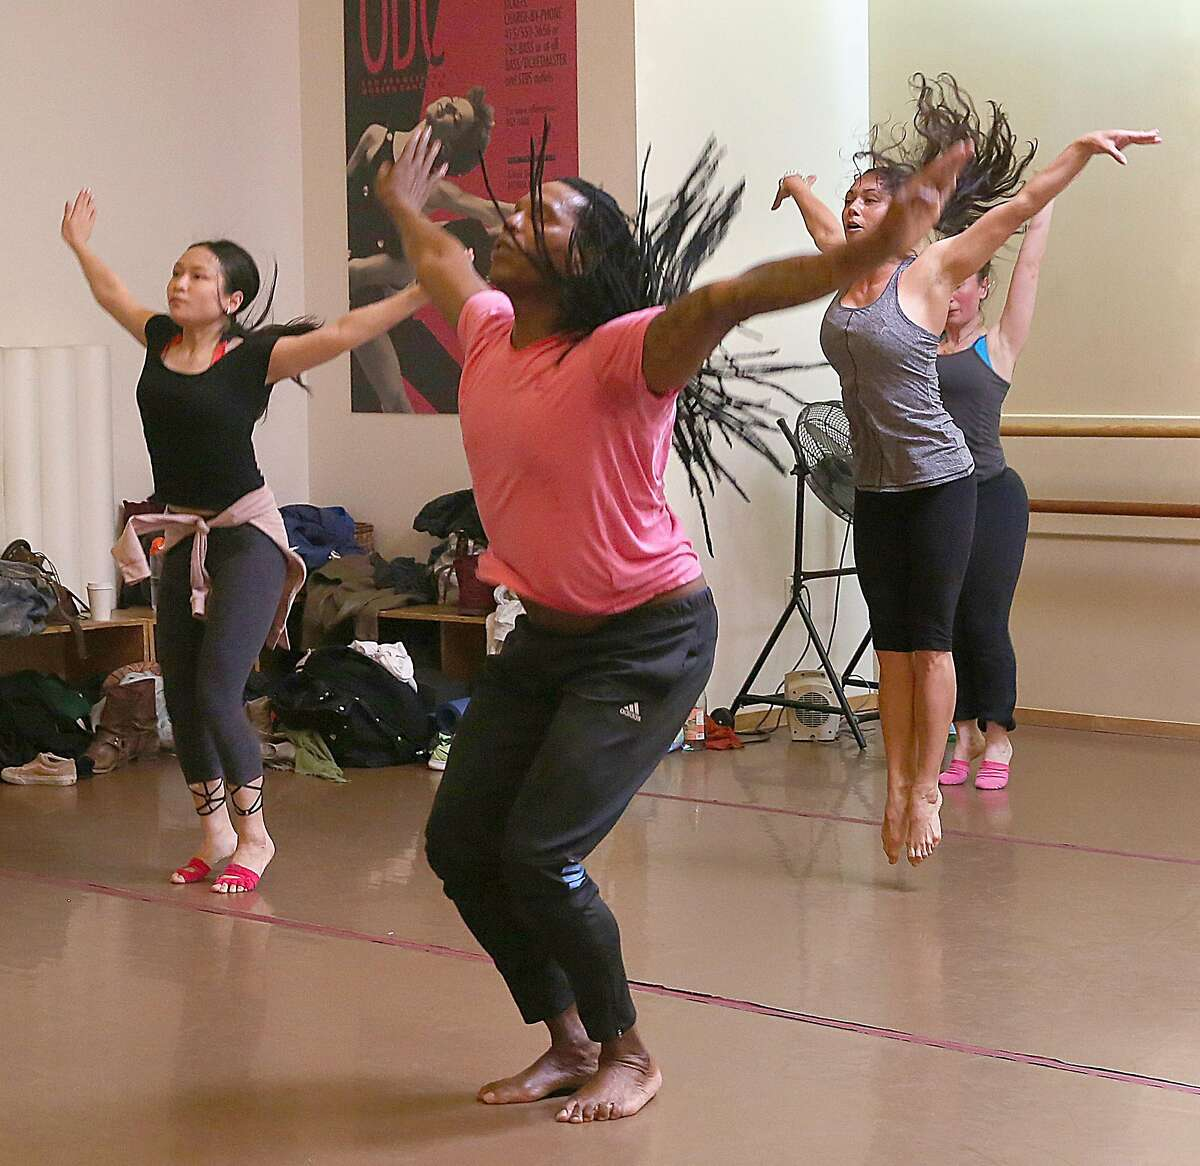 Ramon Ramos Alayo (front) teaches the Afro-Cuban modern dance class on Friday, March 10, 2017, in San Francisco, Calif. Alayo is the artistic director and co-founder of CubaCaribe, a dance organization which represents and spotlights the Bay Area's Cuban and Caribbean artists, dancers and community.